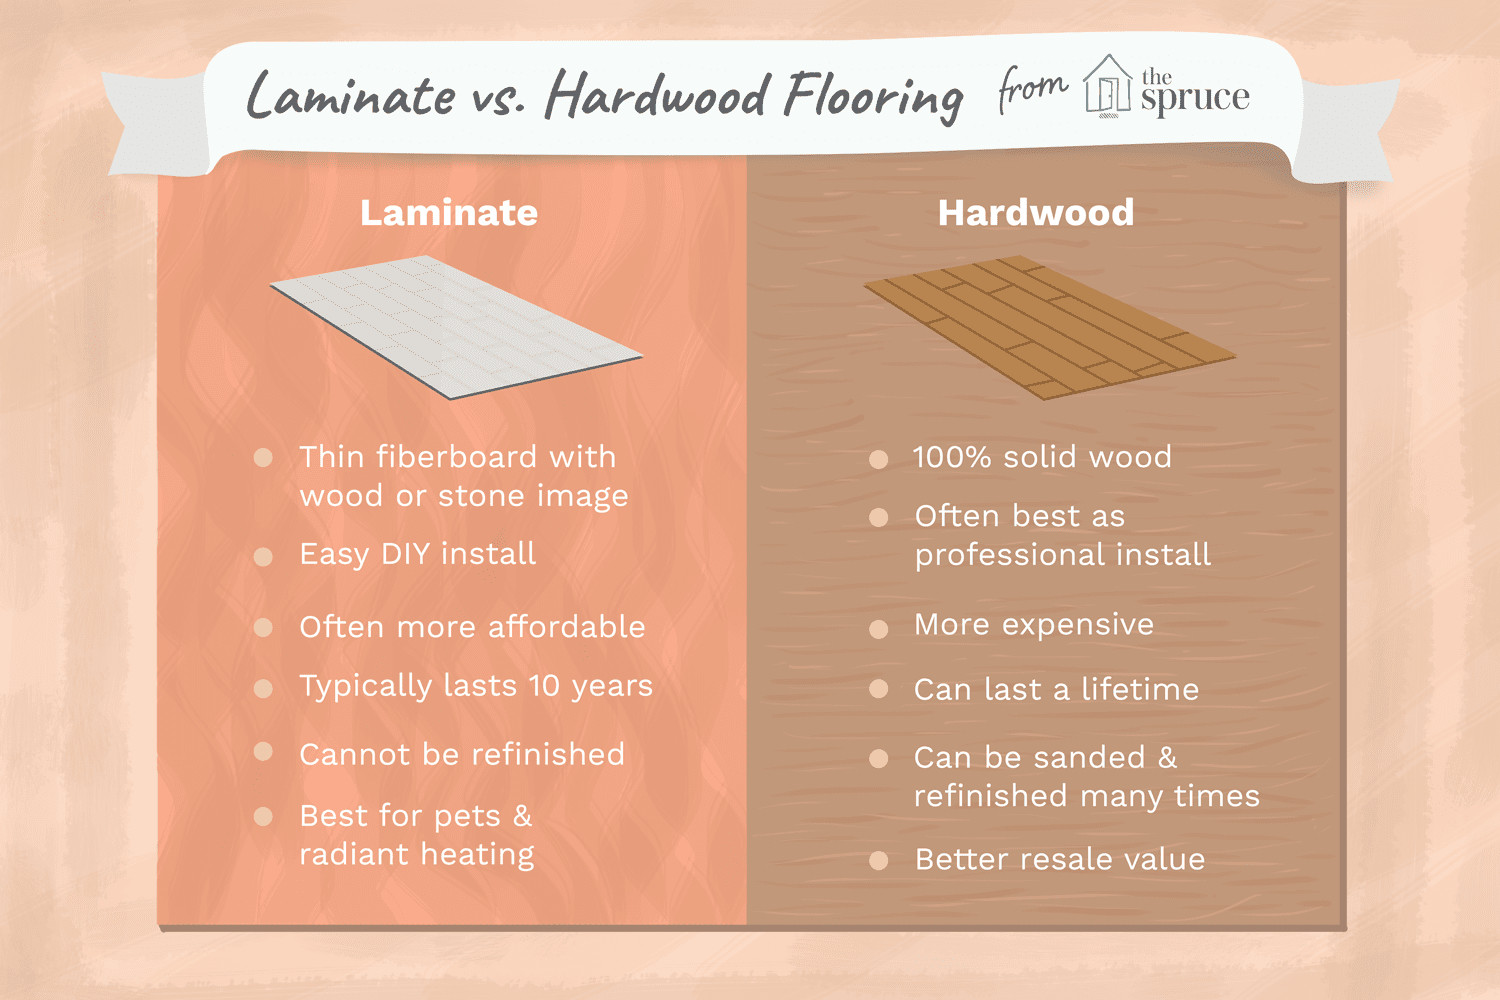 regal hardwood flooring reviews of laminate vs hardwood doesnt have to be a hard decision for hardwood doesnt have to be a hard decision